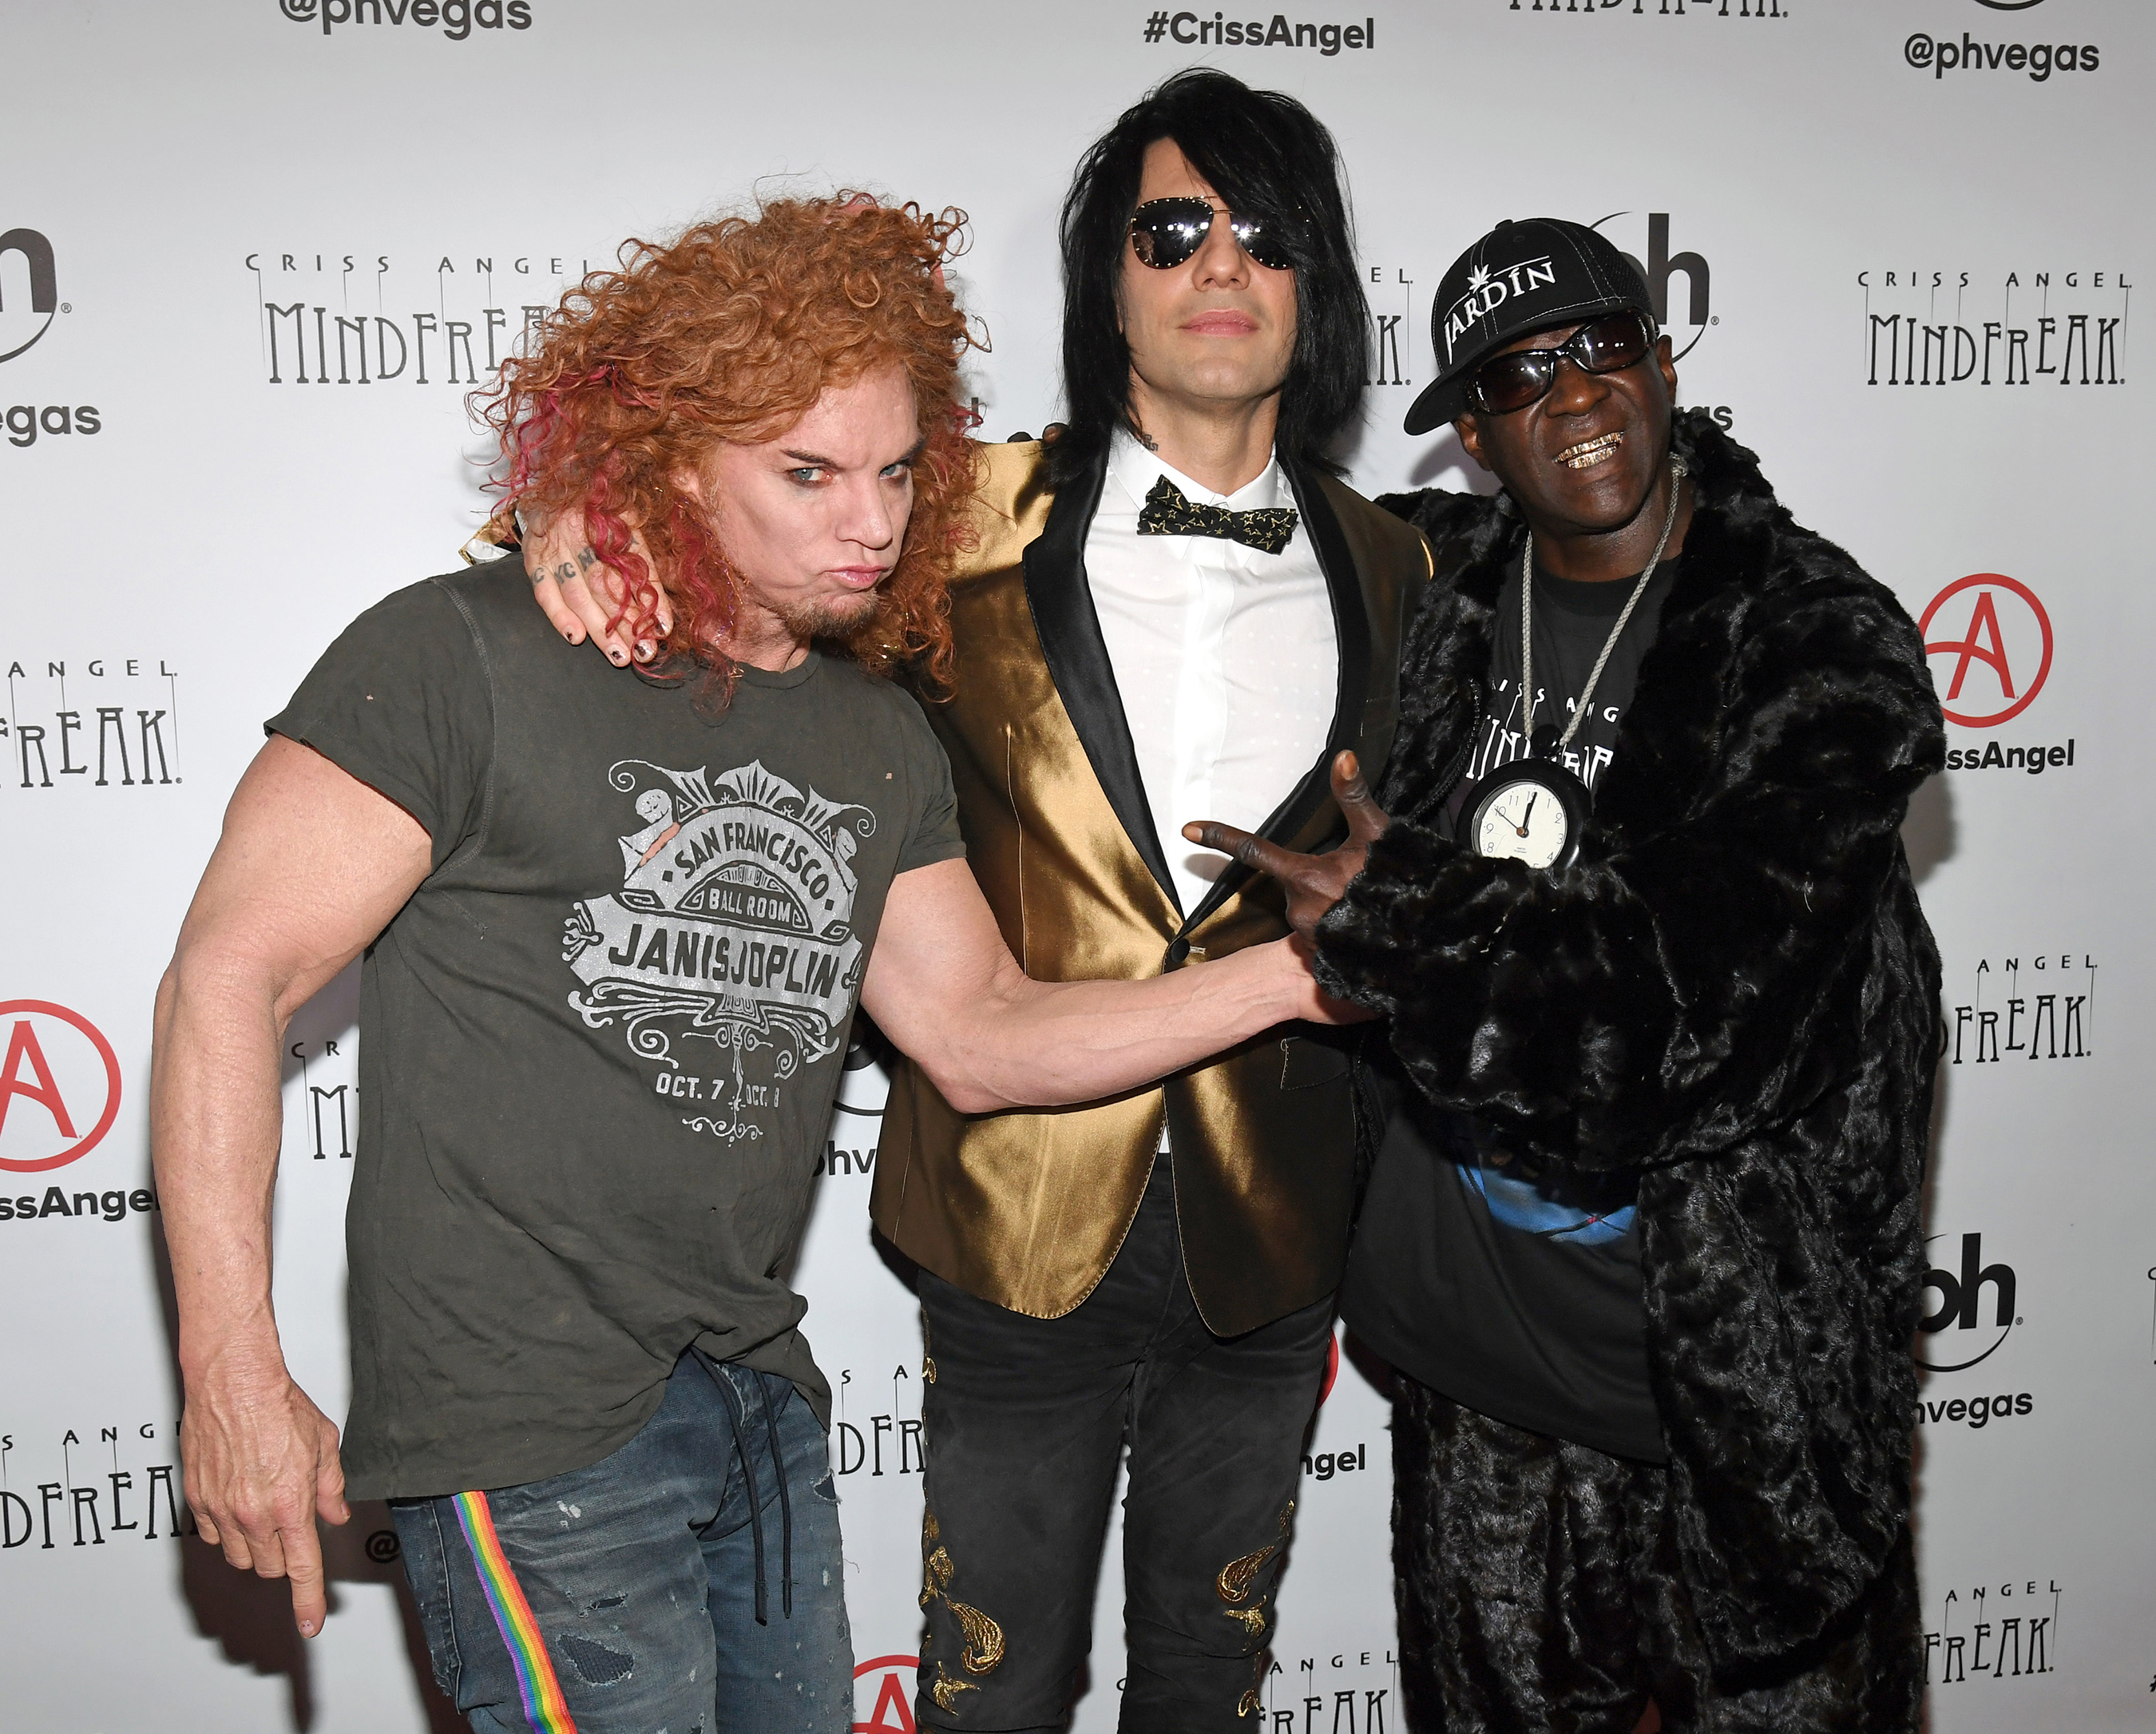 (L-R) Comedian Carrot Top, illusionist Criss Angel and rapper Flavor Flav attend the grand opening of Criss Angel MINDFREAK at Planet Hollywood Resort & Casino on January 19, 2019 in Las Vegas